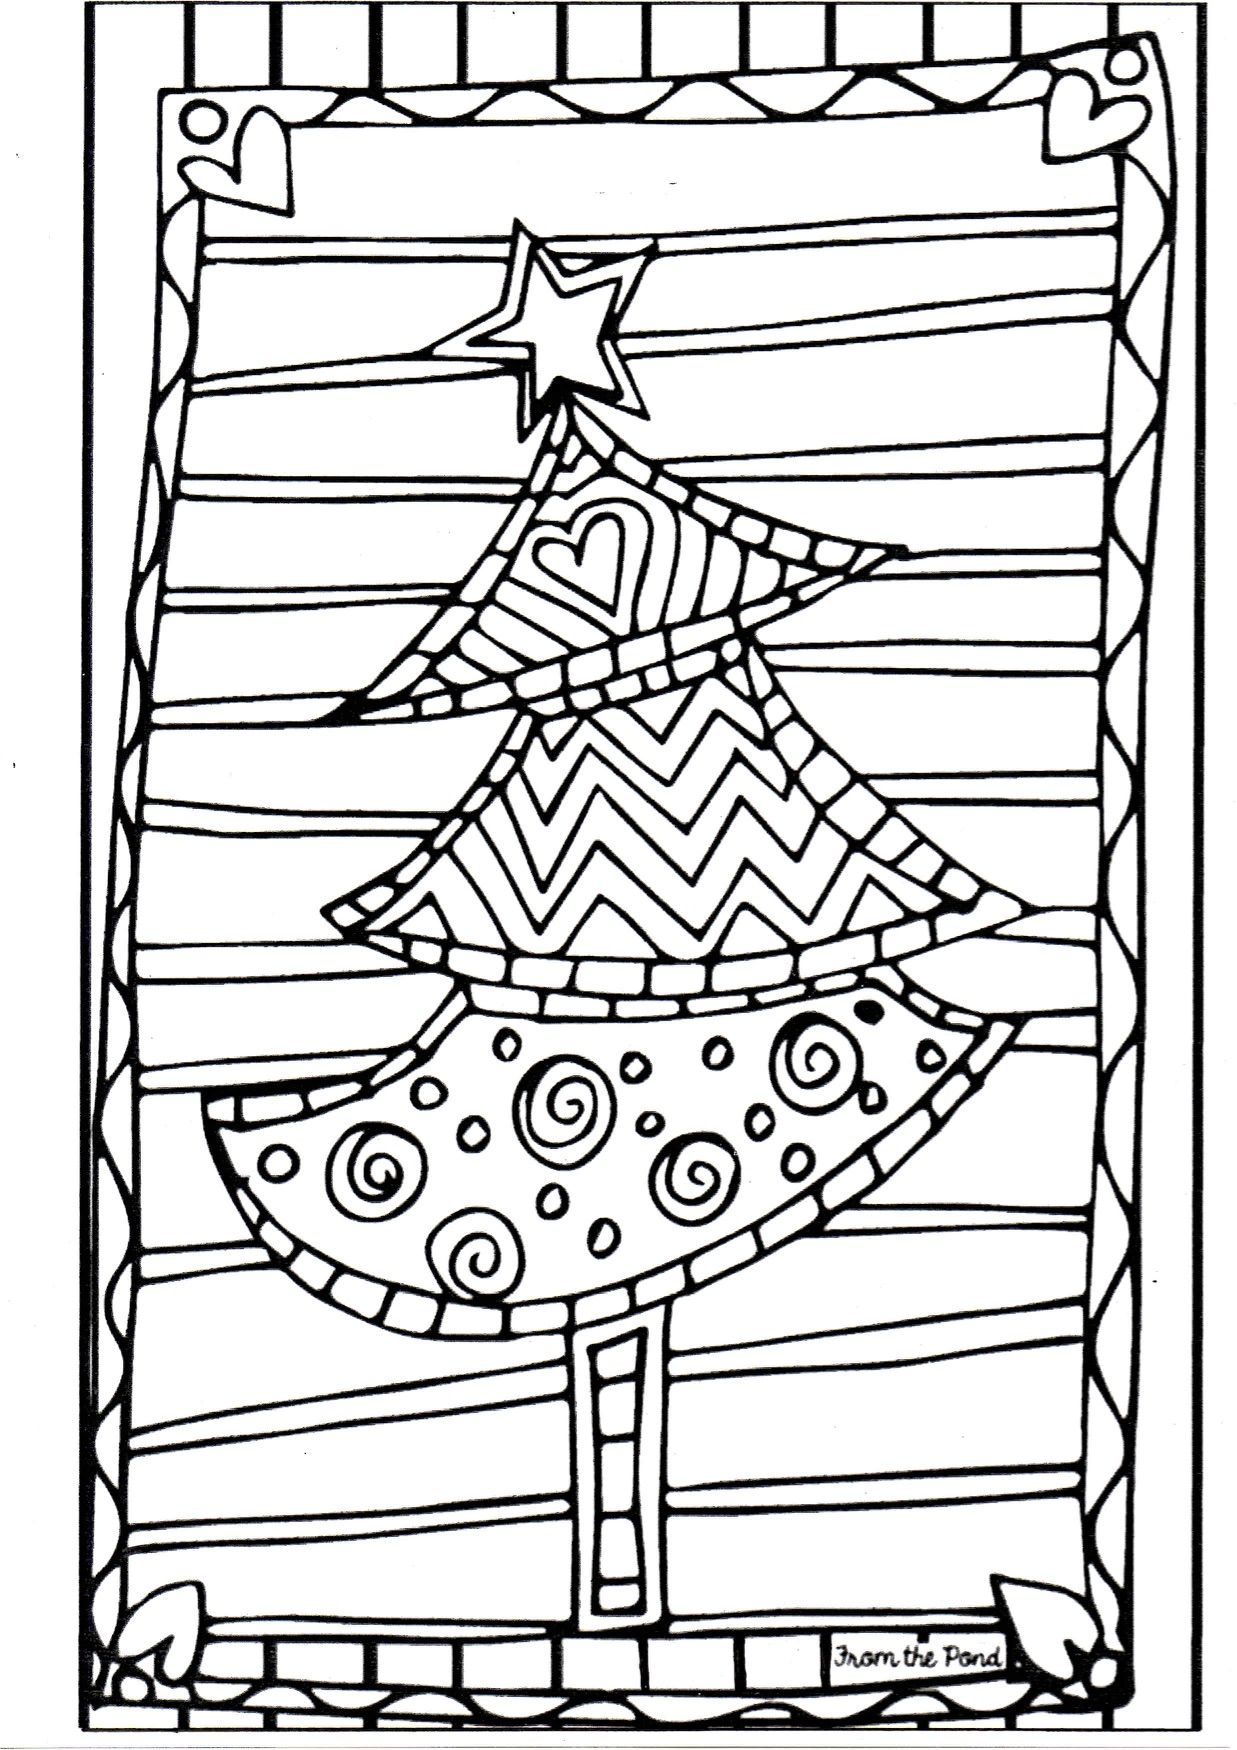 Pin de Thresa Whitaker en Coloring Pages | Pinterest ...